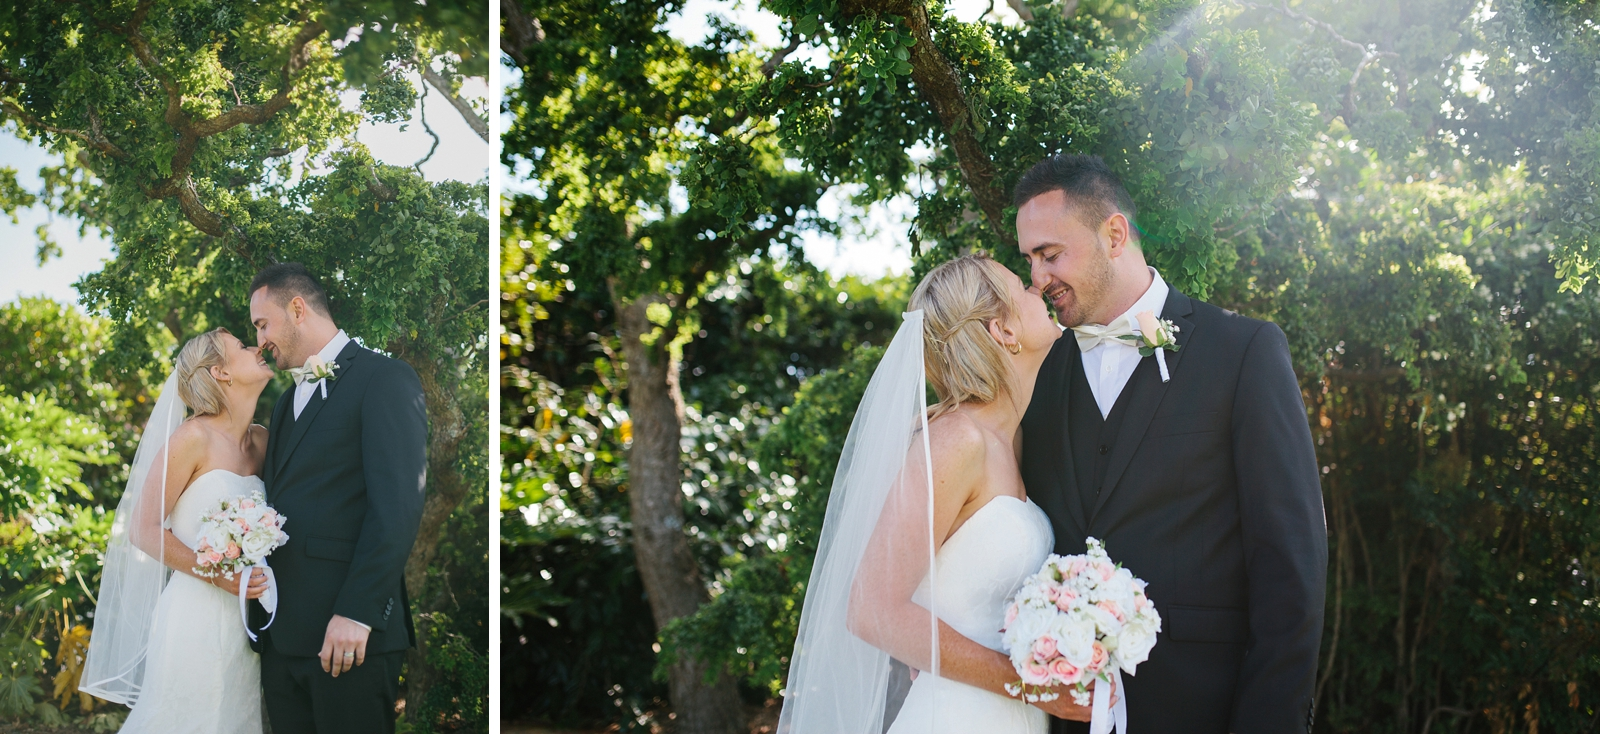 ConnorLaura_Auckland Wedding Photographer_Patty Lagera_0078.jpg